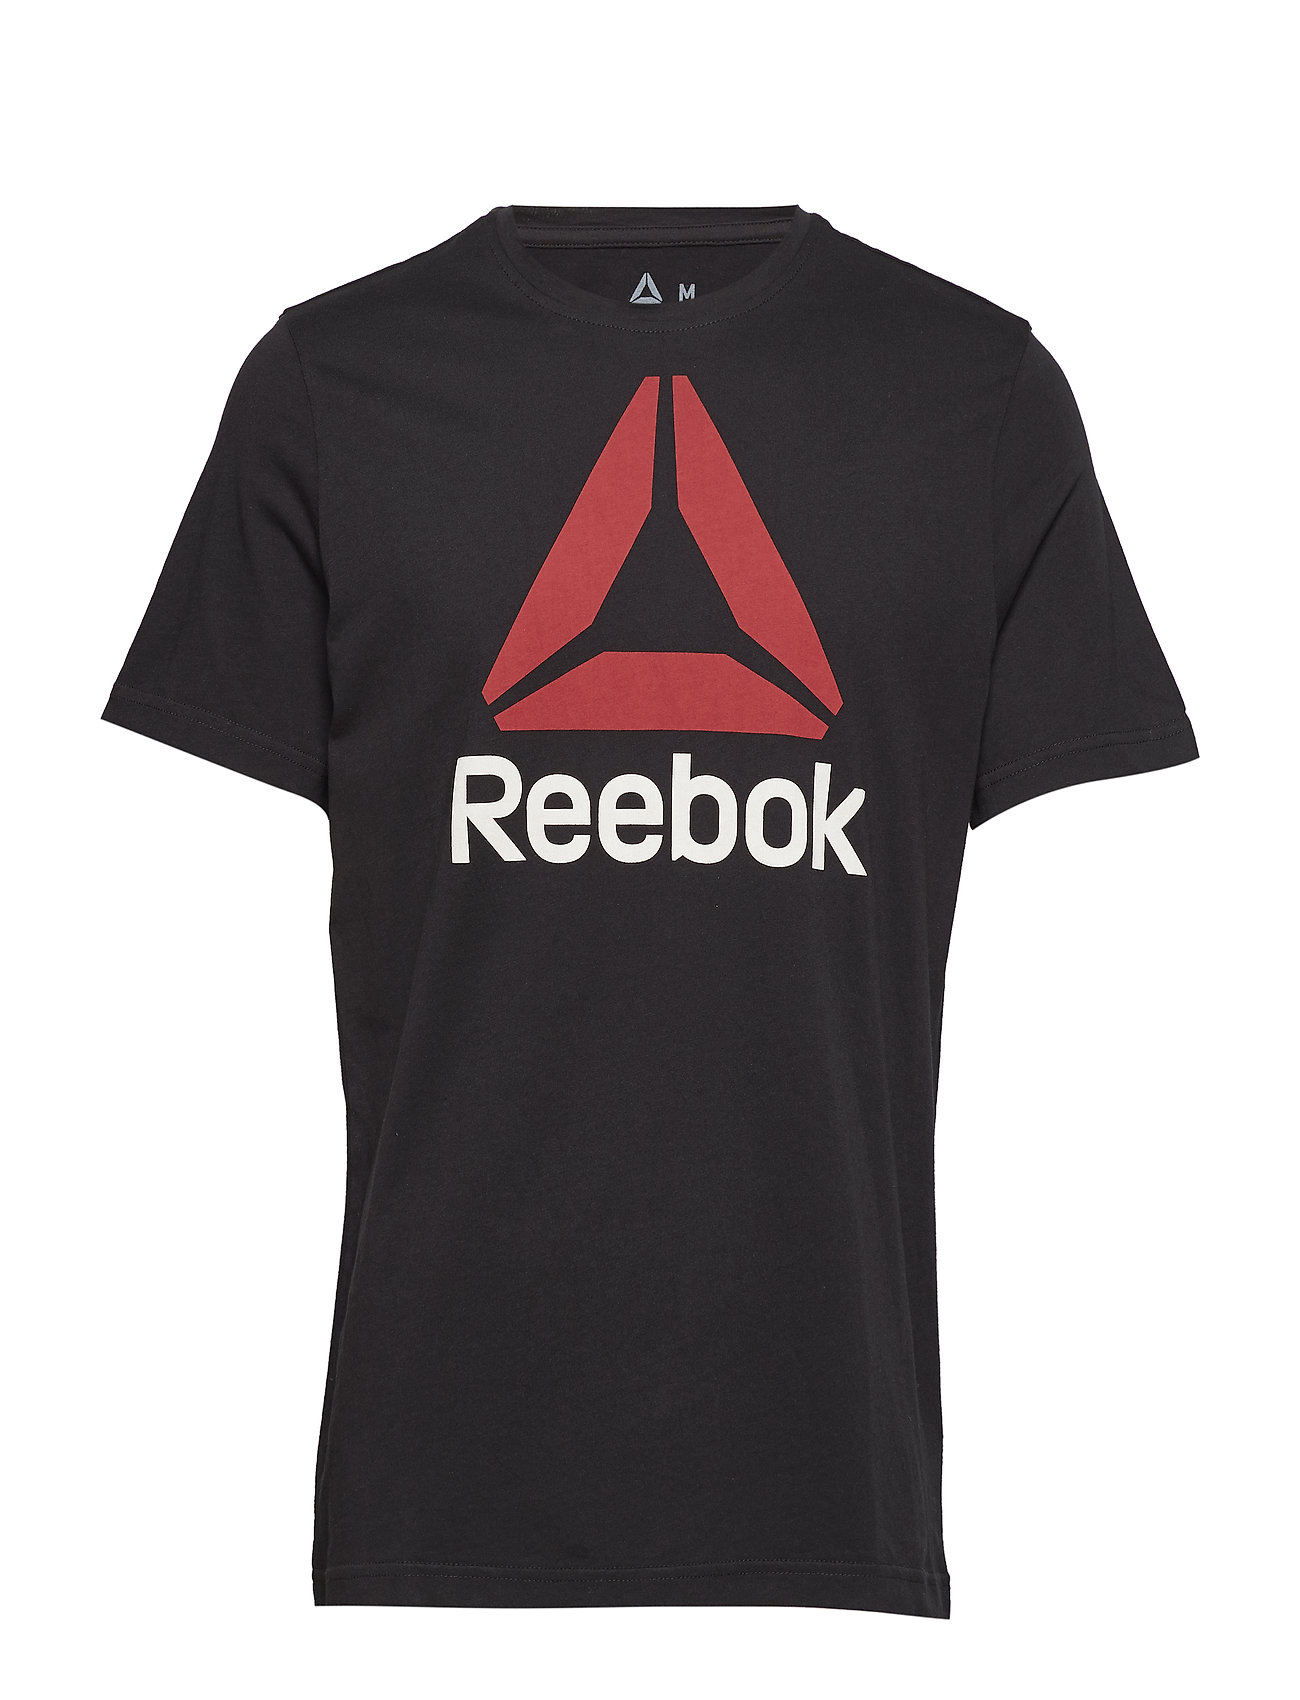 Reebok Performance QQR- Reebok Stacked - BLACK/EXCRED